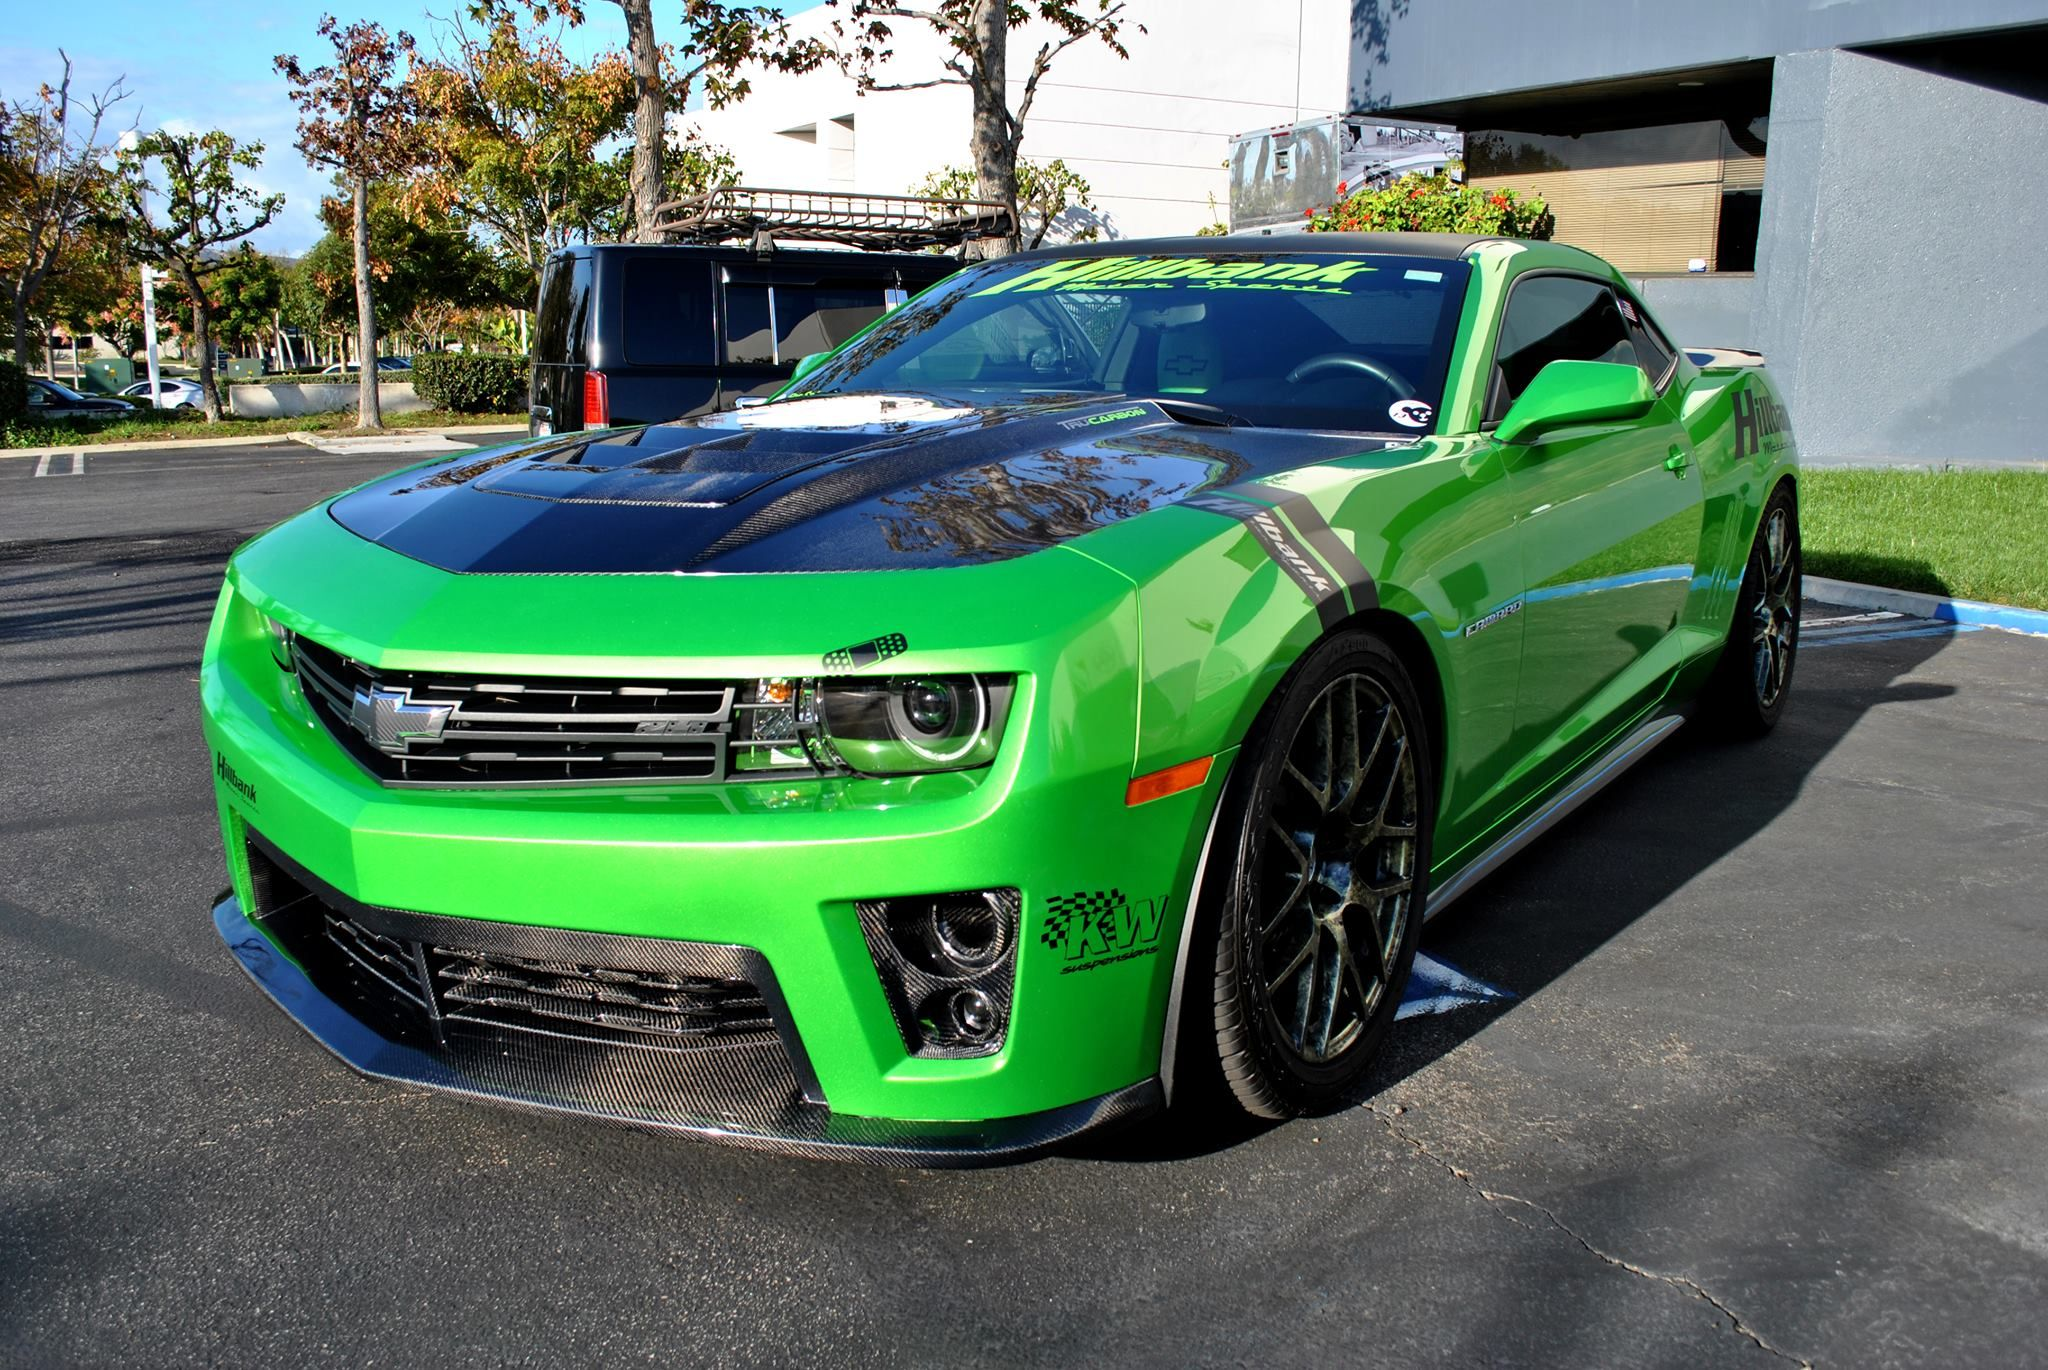 Synergy Green Supercharged For Sale Camaro5 Chevy Camaro Forum